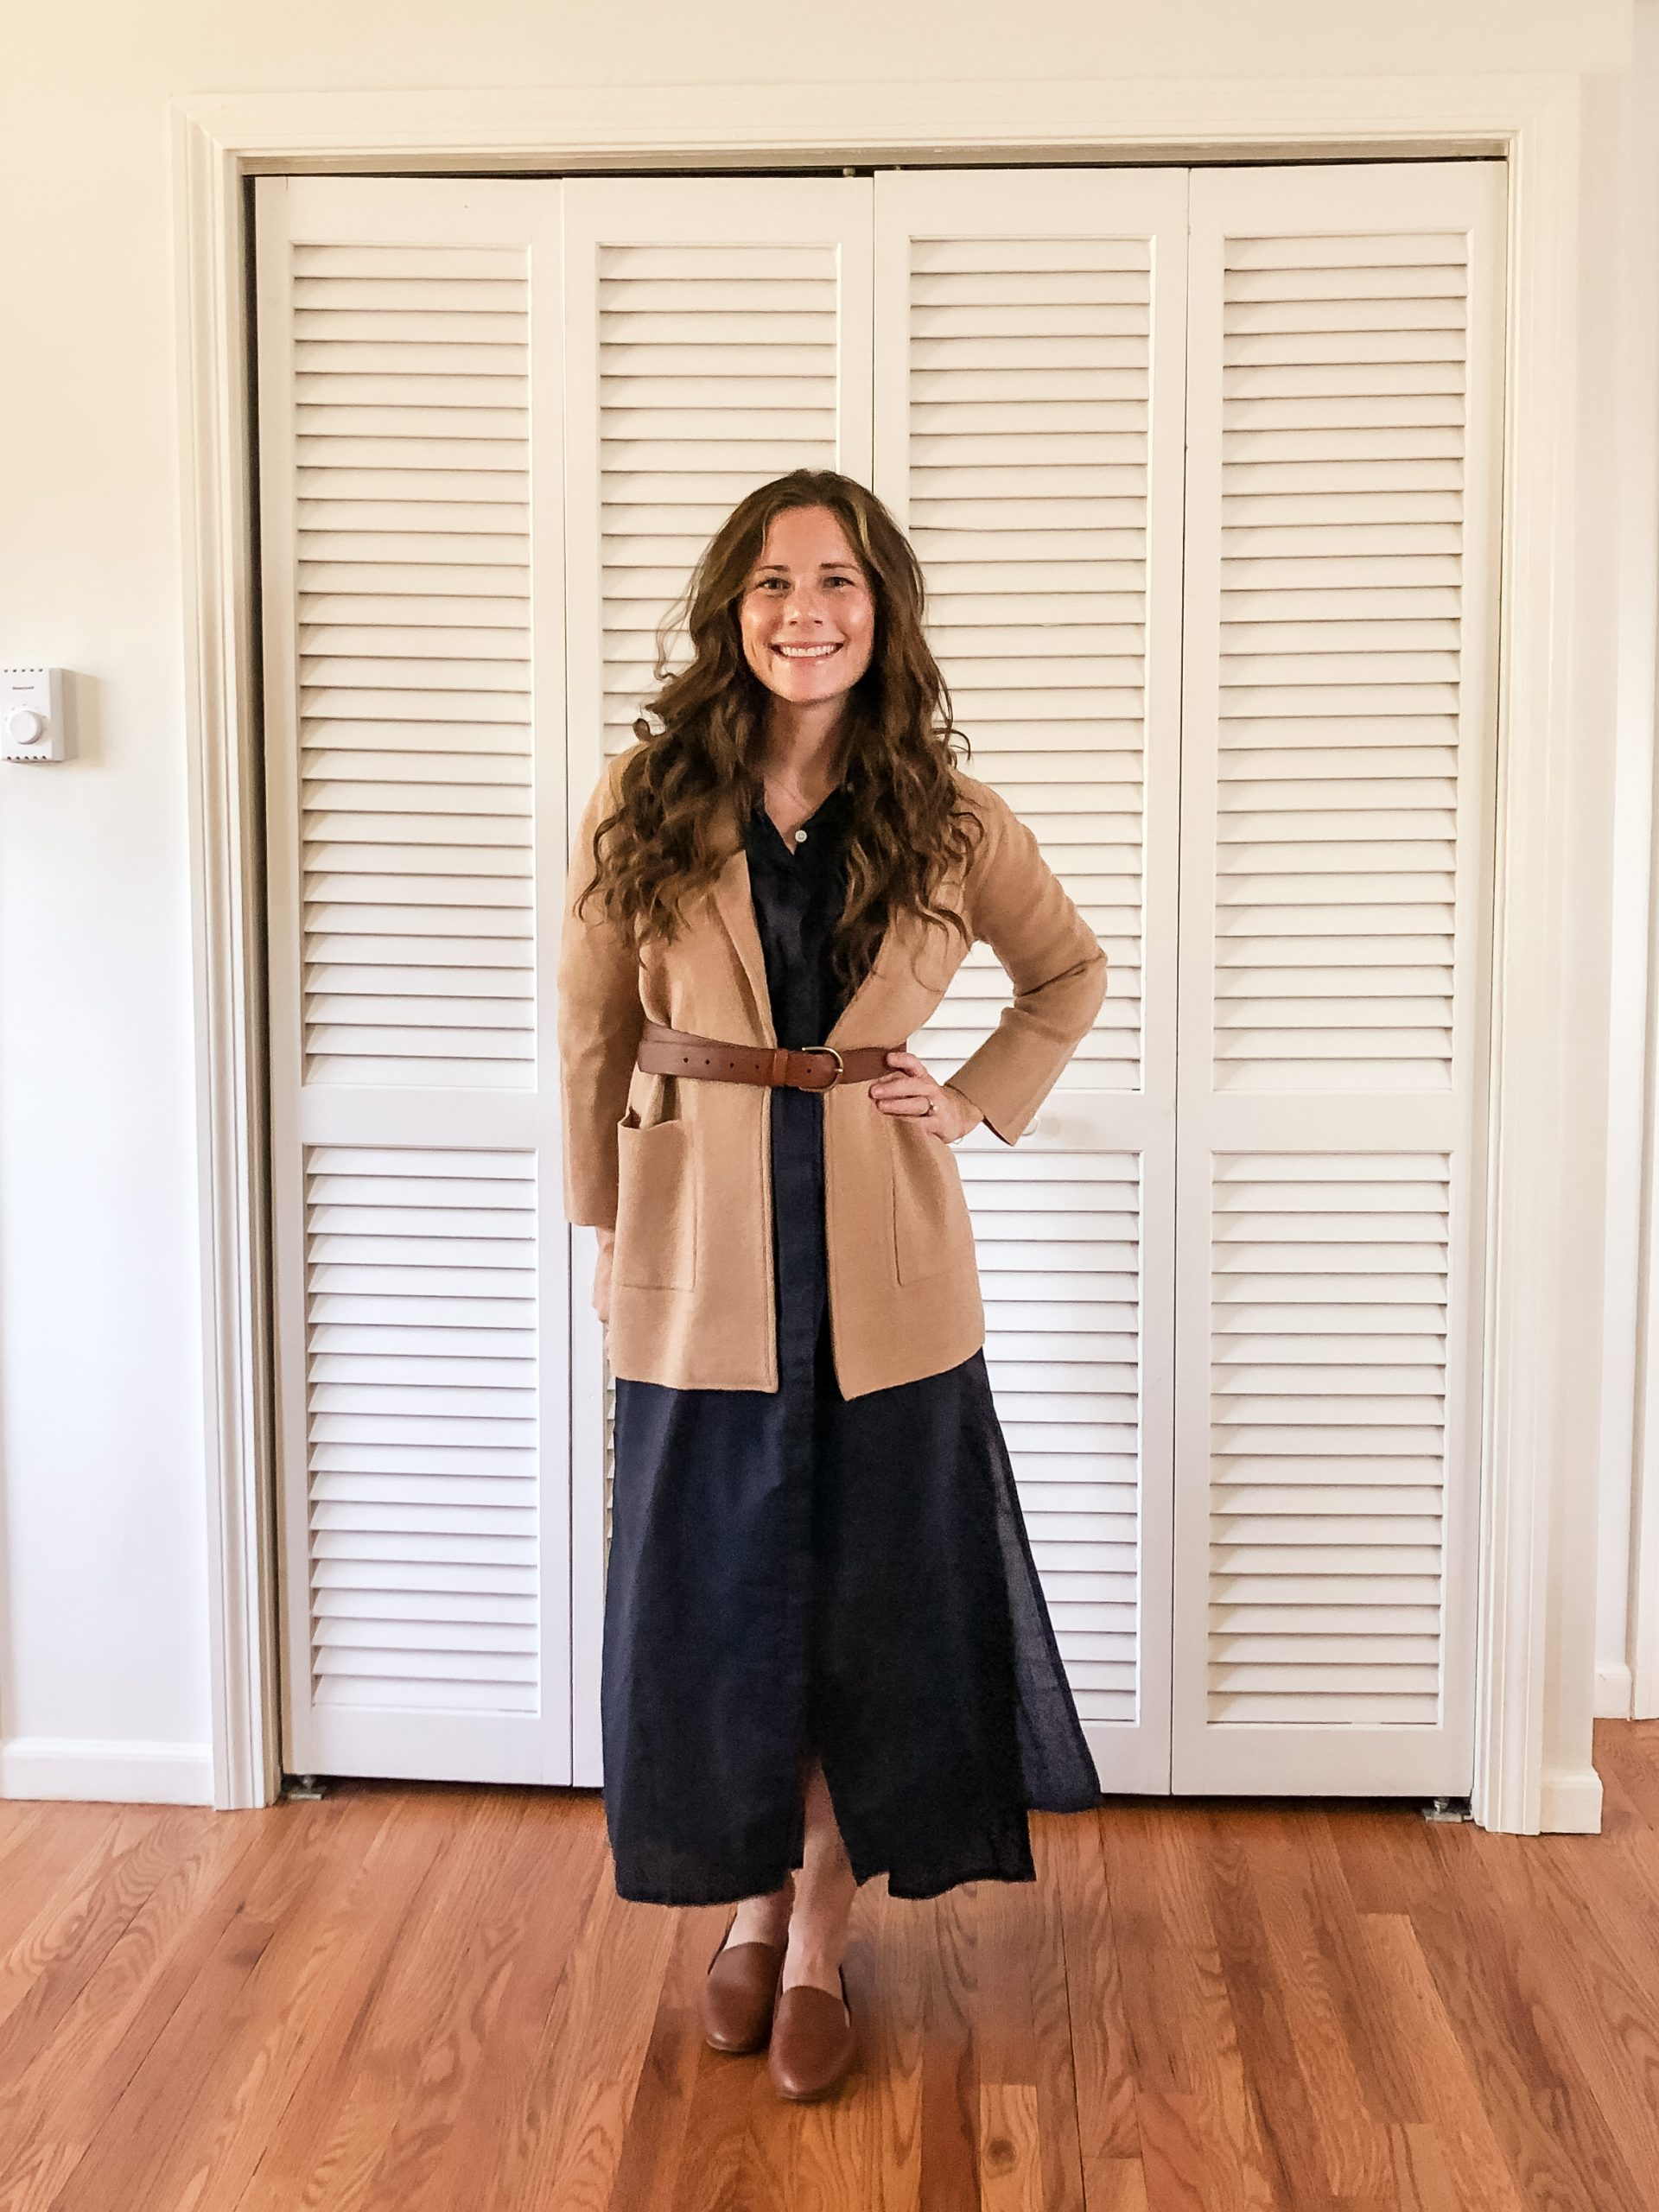 Early Fall Style - Easy Navy maxi with Leather Belt over Sweater Cardigan from JCrew - Preppy New England Style for Fall